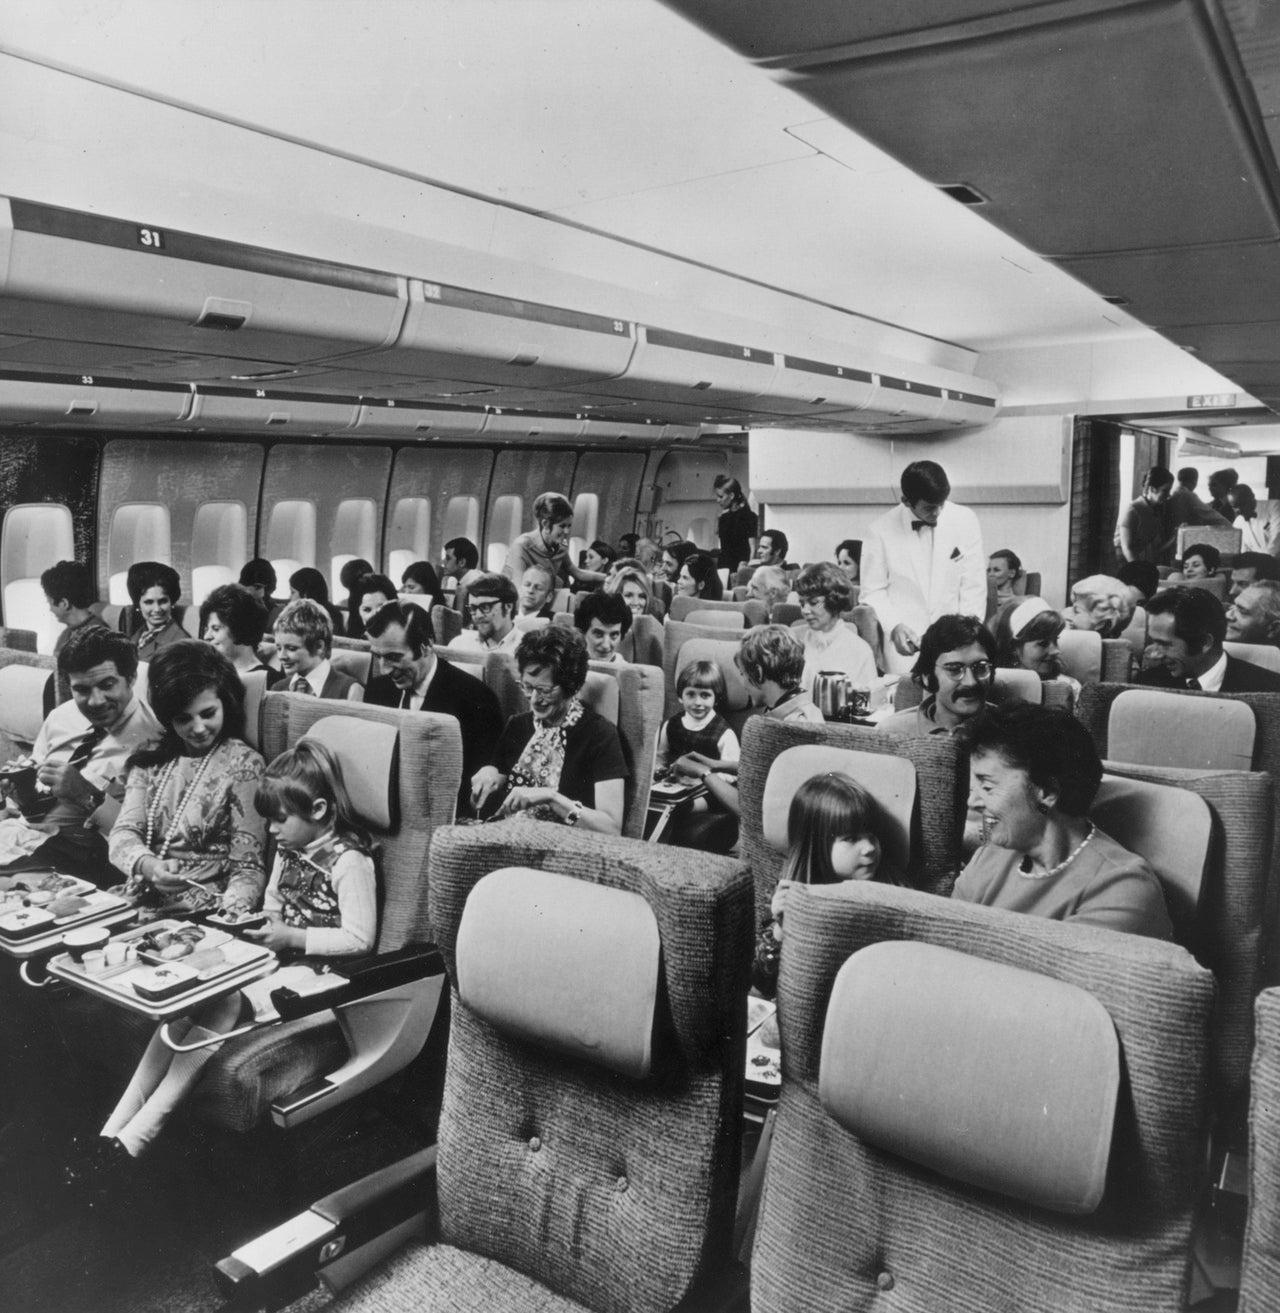 That amazing photo of economy class flying in the 1960s is fake